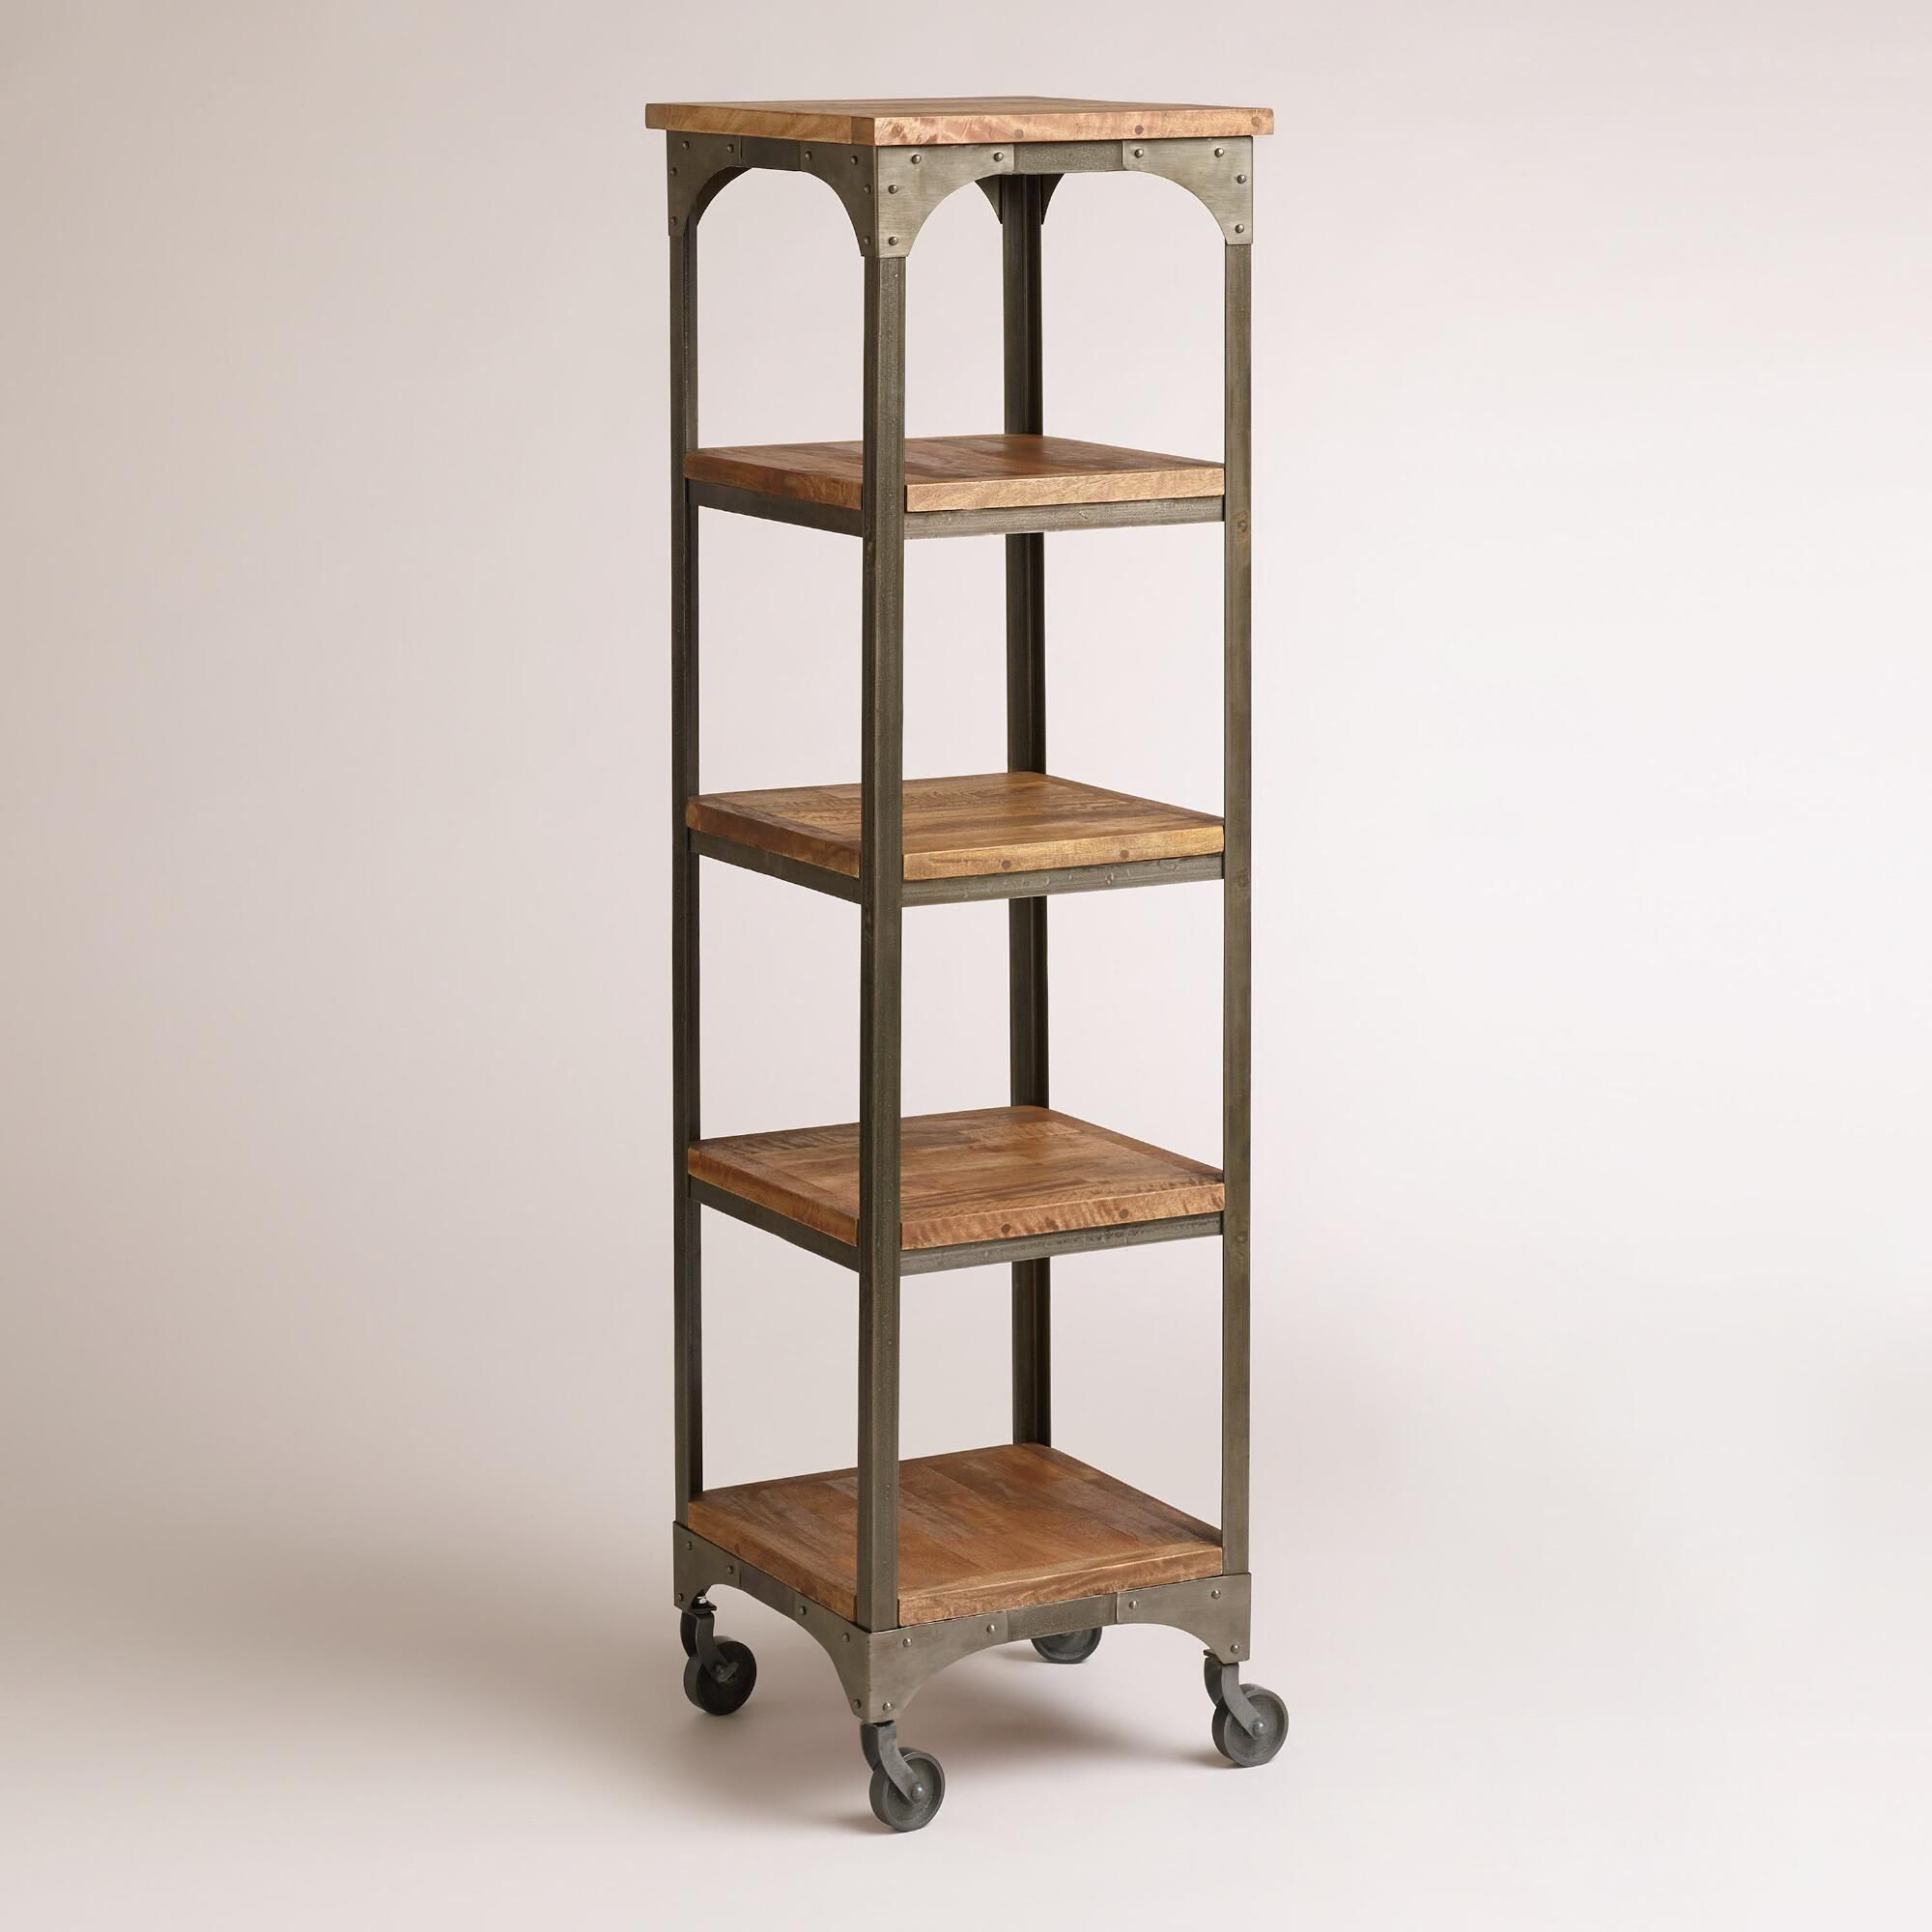 Our four-shelf tower gives your space a rustic, industrial feel with its  mango